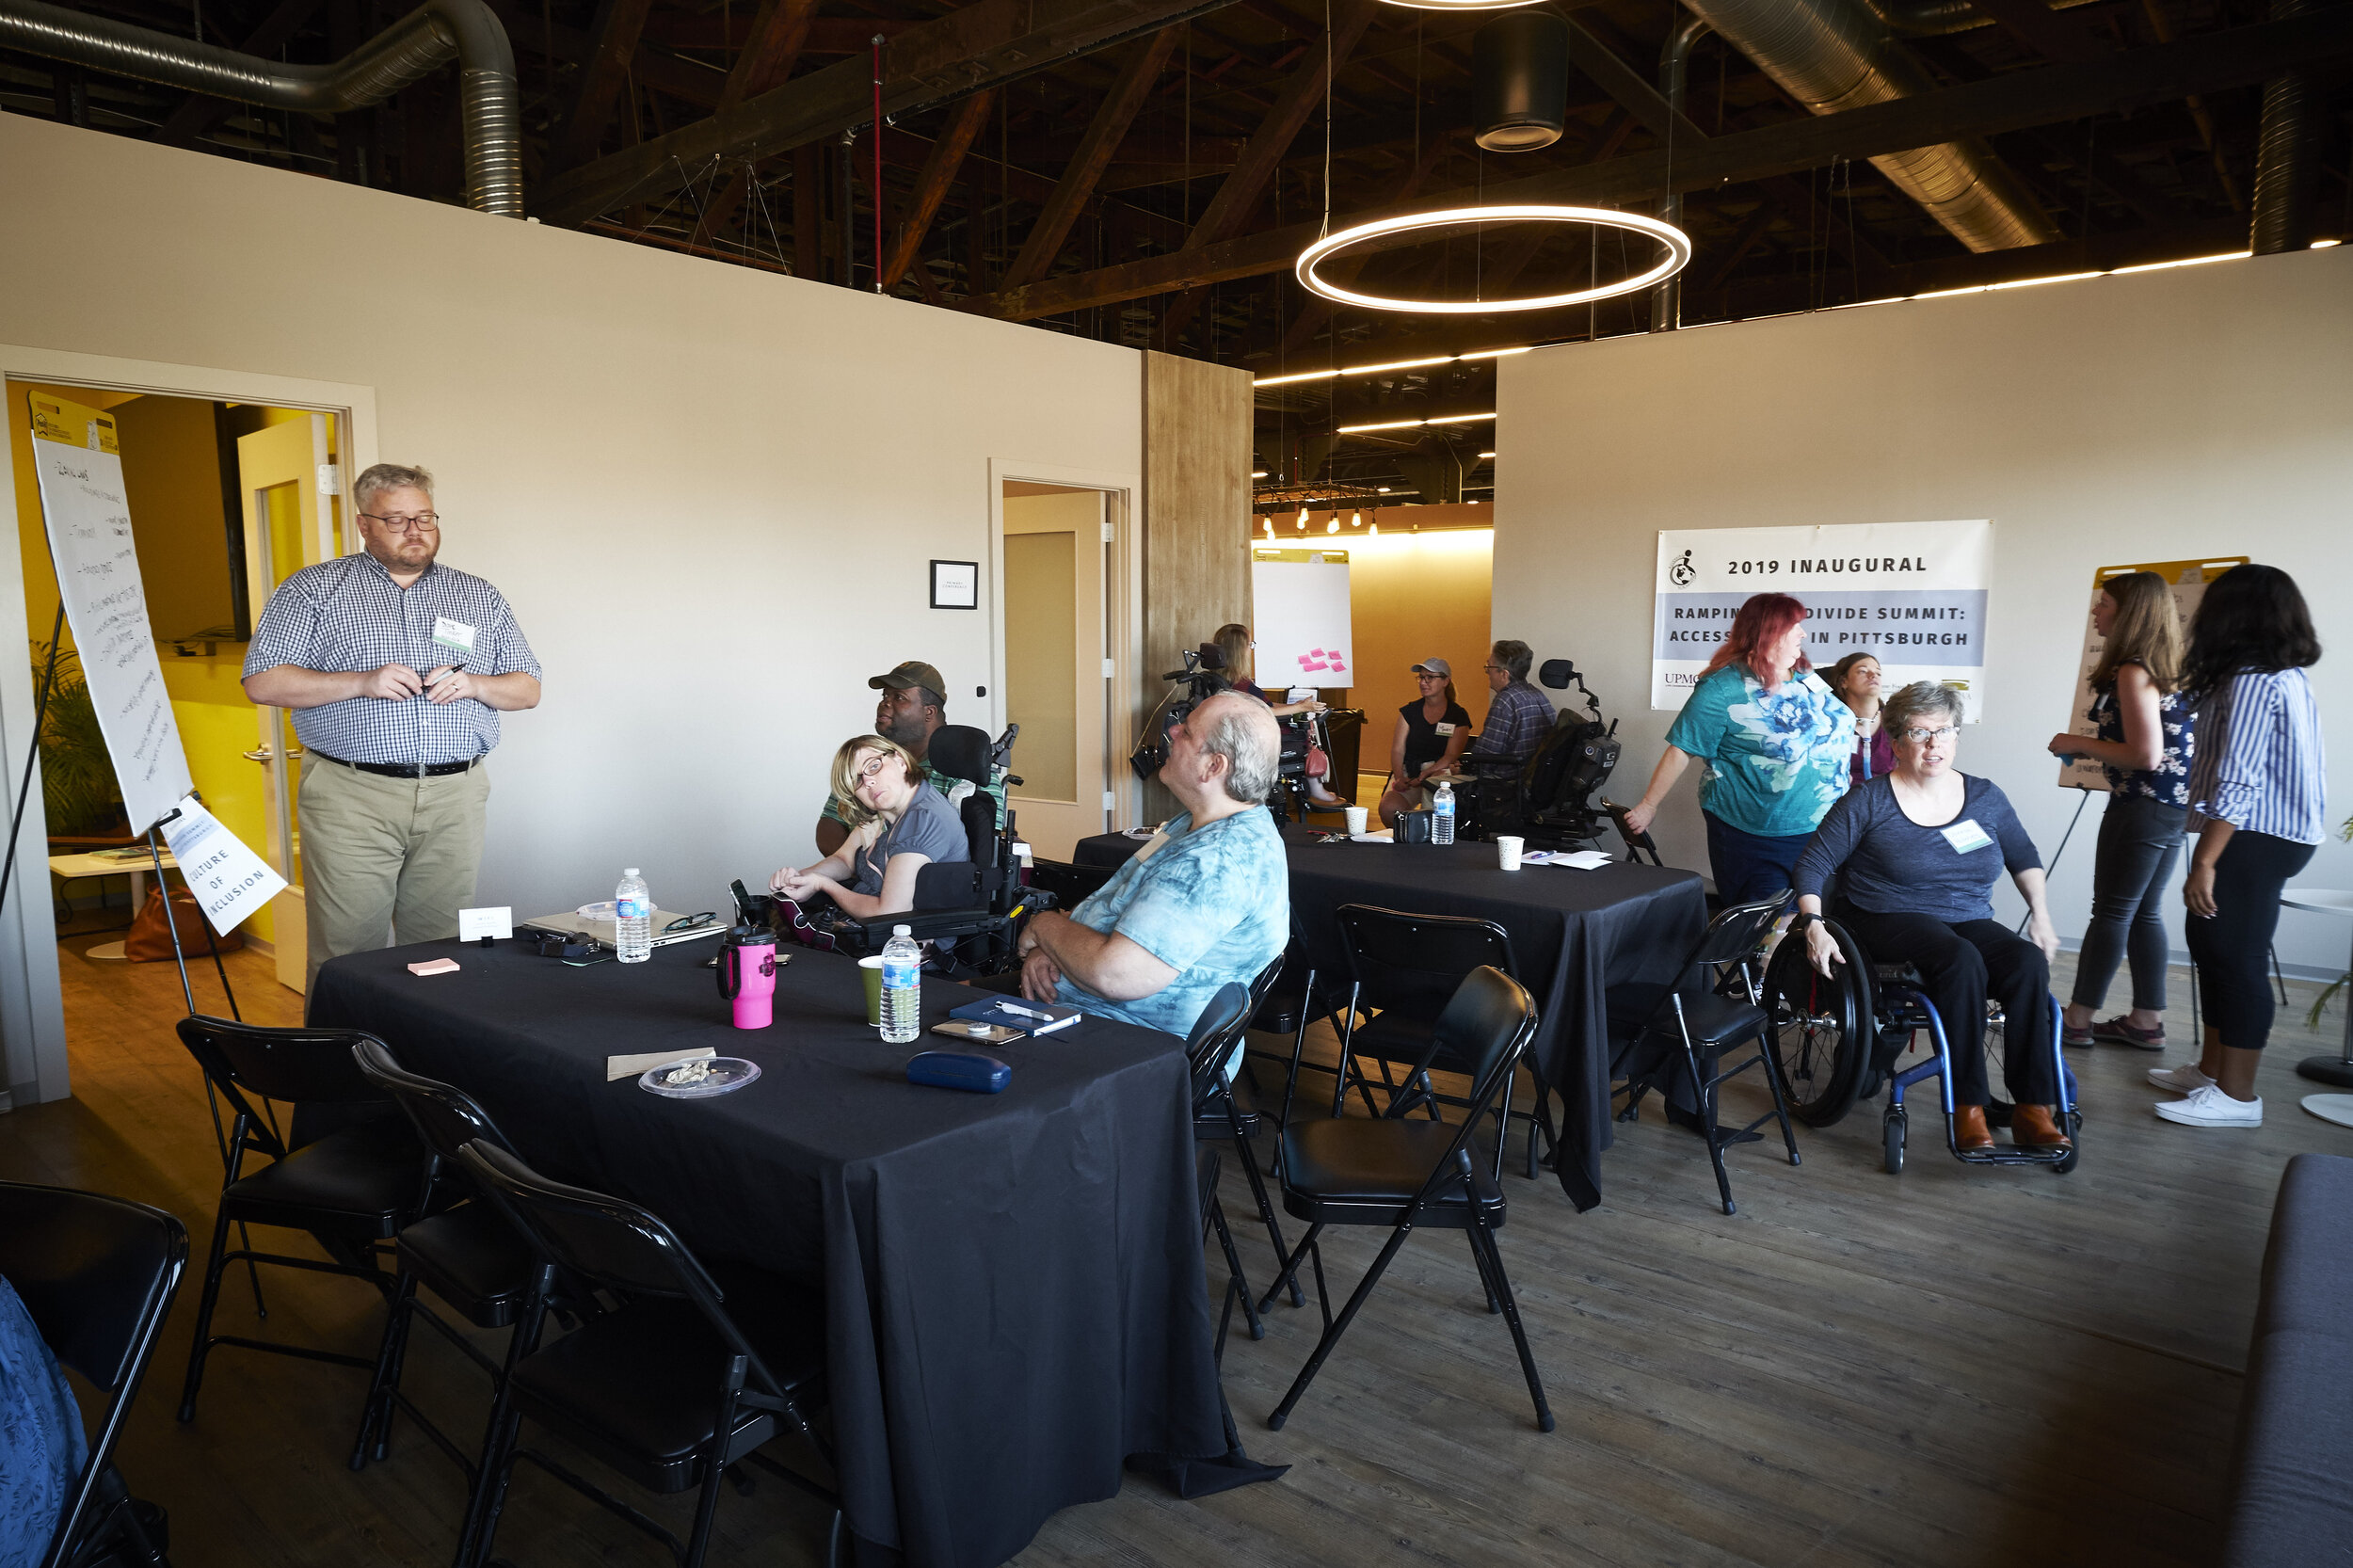 A group of participants are pictured talking. They are divided into small groups. Some are writing ideas on tablets, and others are gathered around listening.